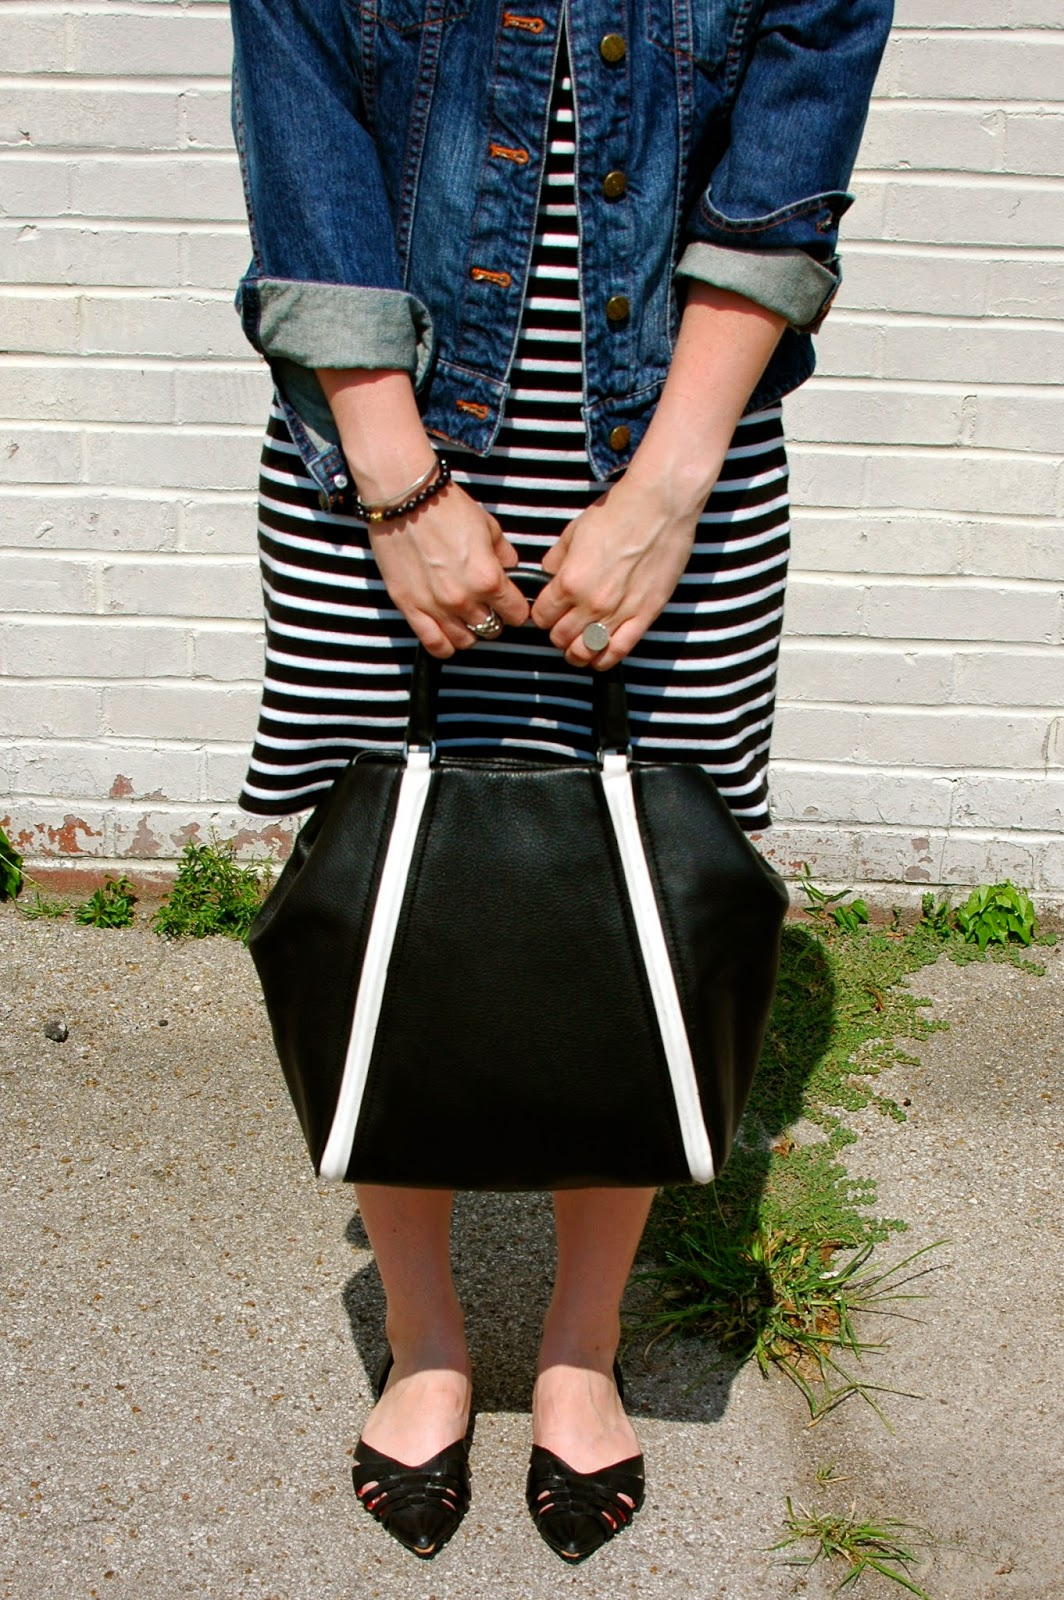 DV D'Orsay flats, black and white bag, Marc by Marc Jacobs, Jean Jacket